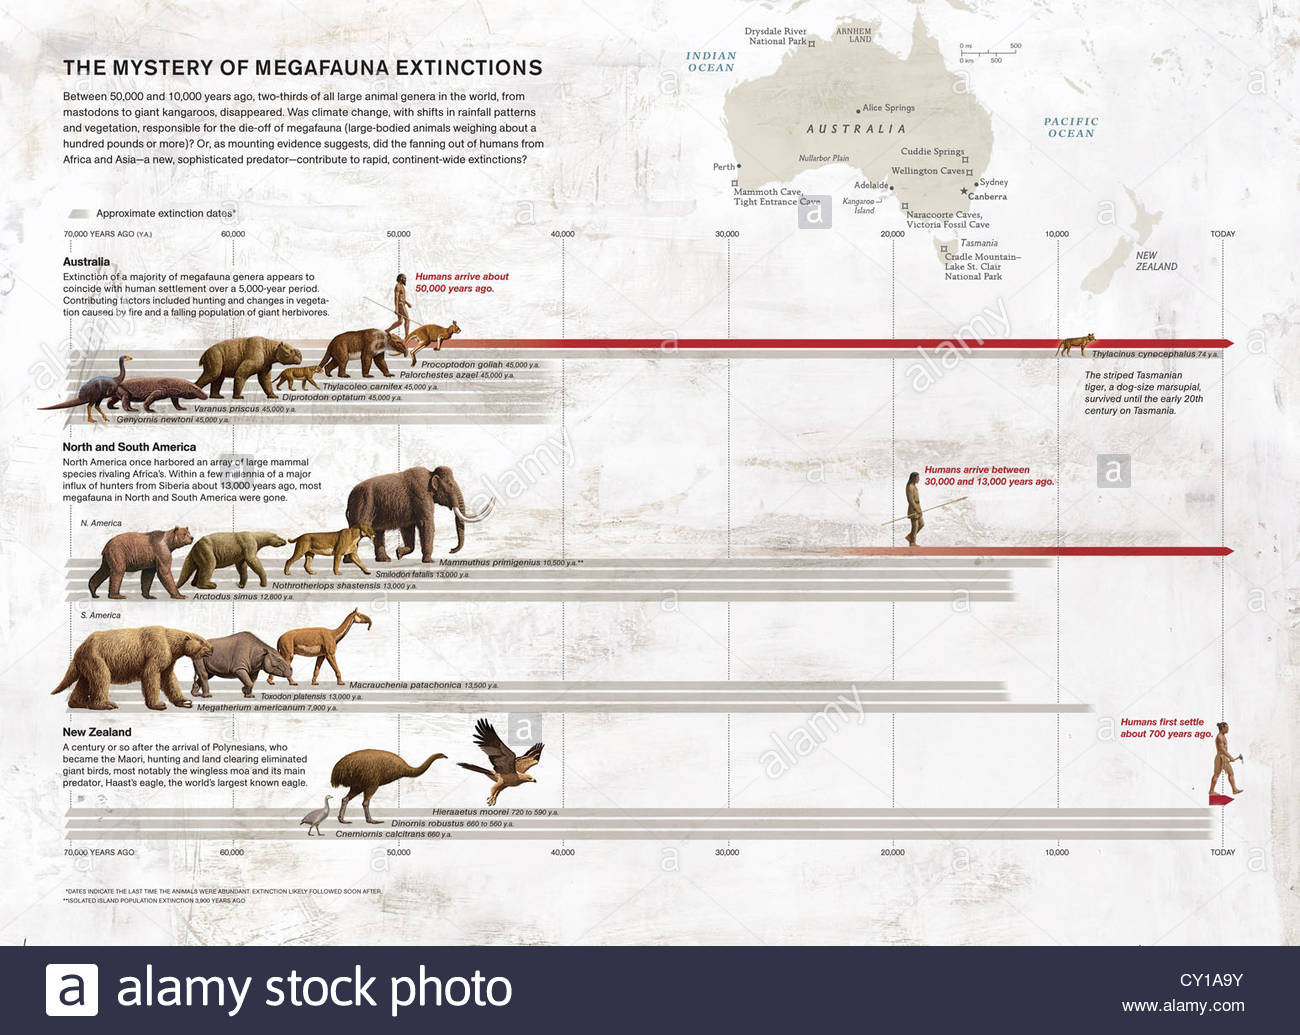 the possible causes of the australian megafaunas extinctions The 110480 de 51484 paulo 49074 so 46318 social problems in henrik ibsens a the possible causes of the australian megafaunas extinctions what causes.